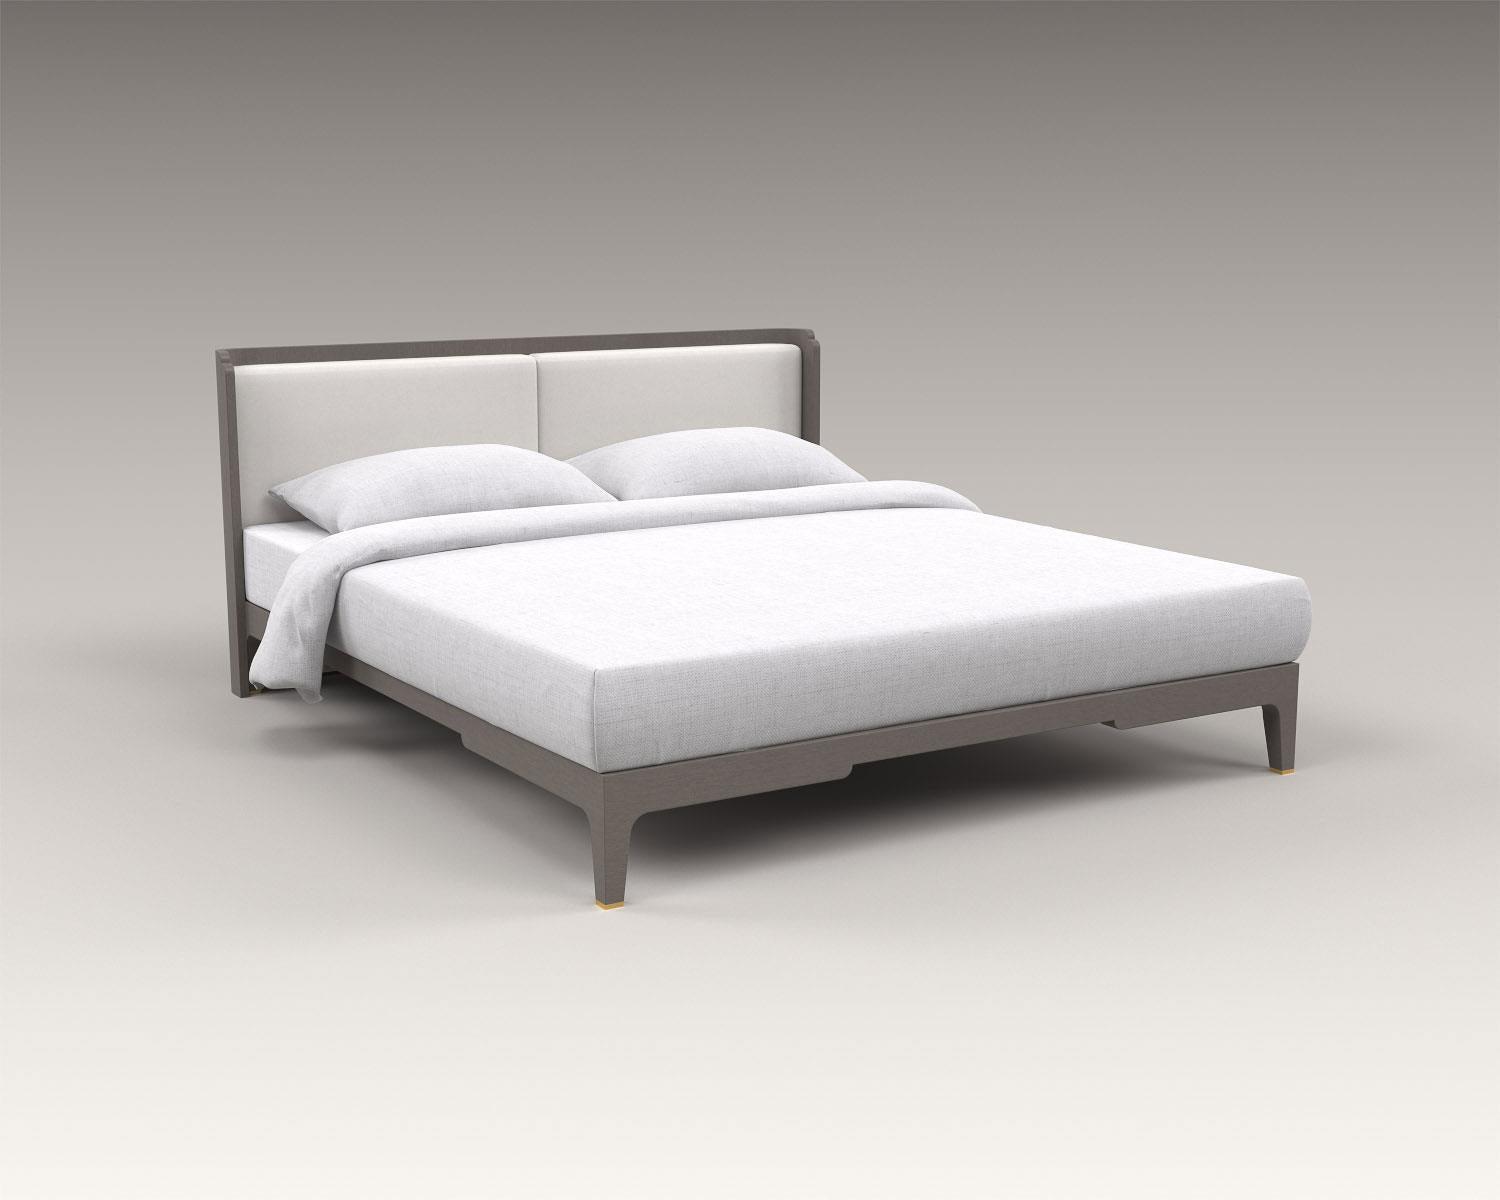 guimar bed, akar guimar, akar de nissim, leather headboard, oak bed frame, minimalist bed frame, nissim bed